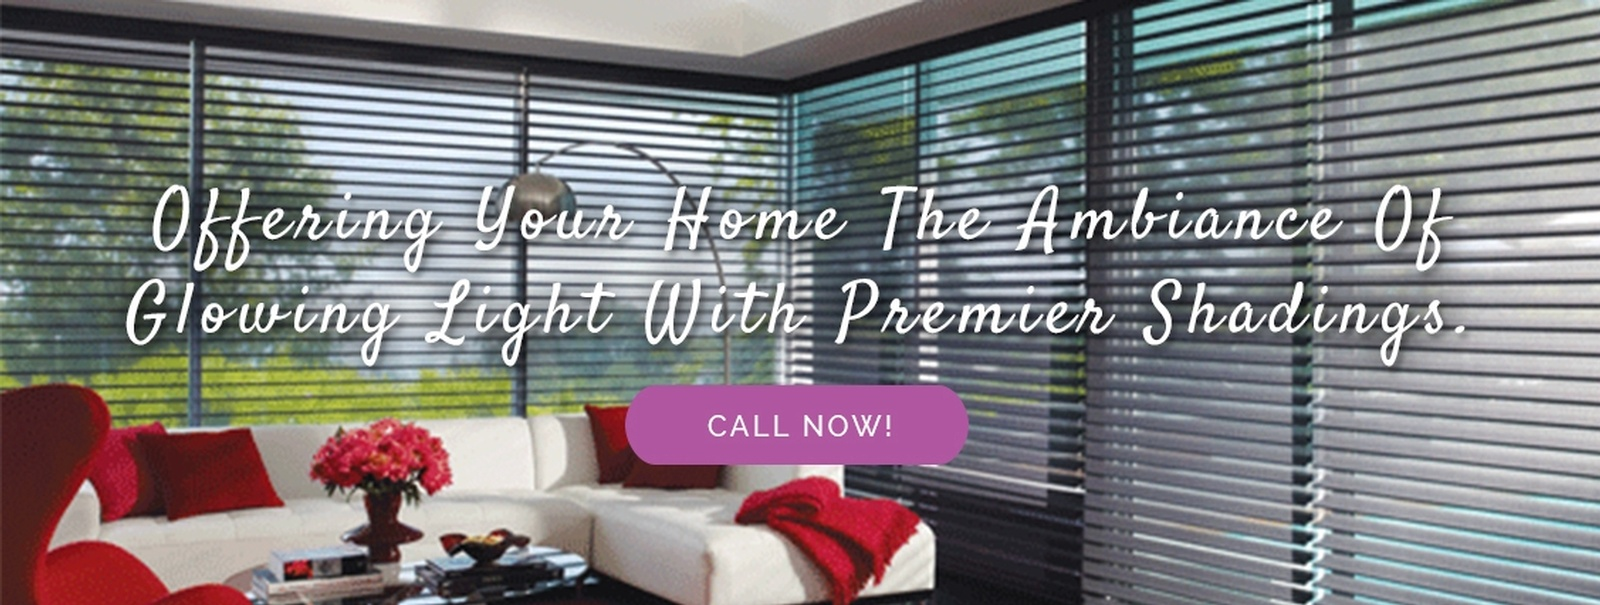 Sensational Seams Offering Your Home the Ambiance of Glowing Light with Premier Shadings